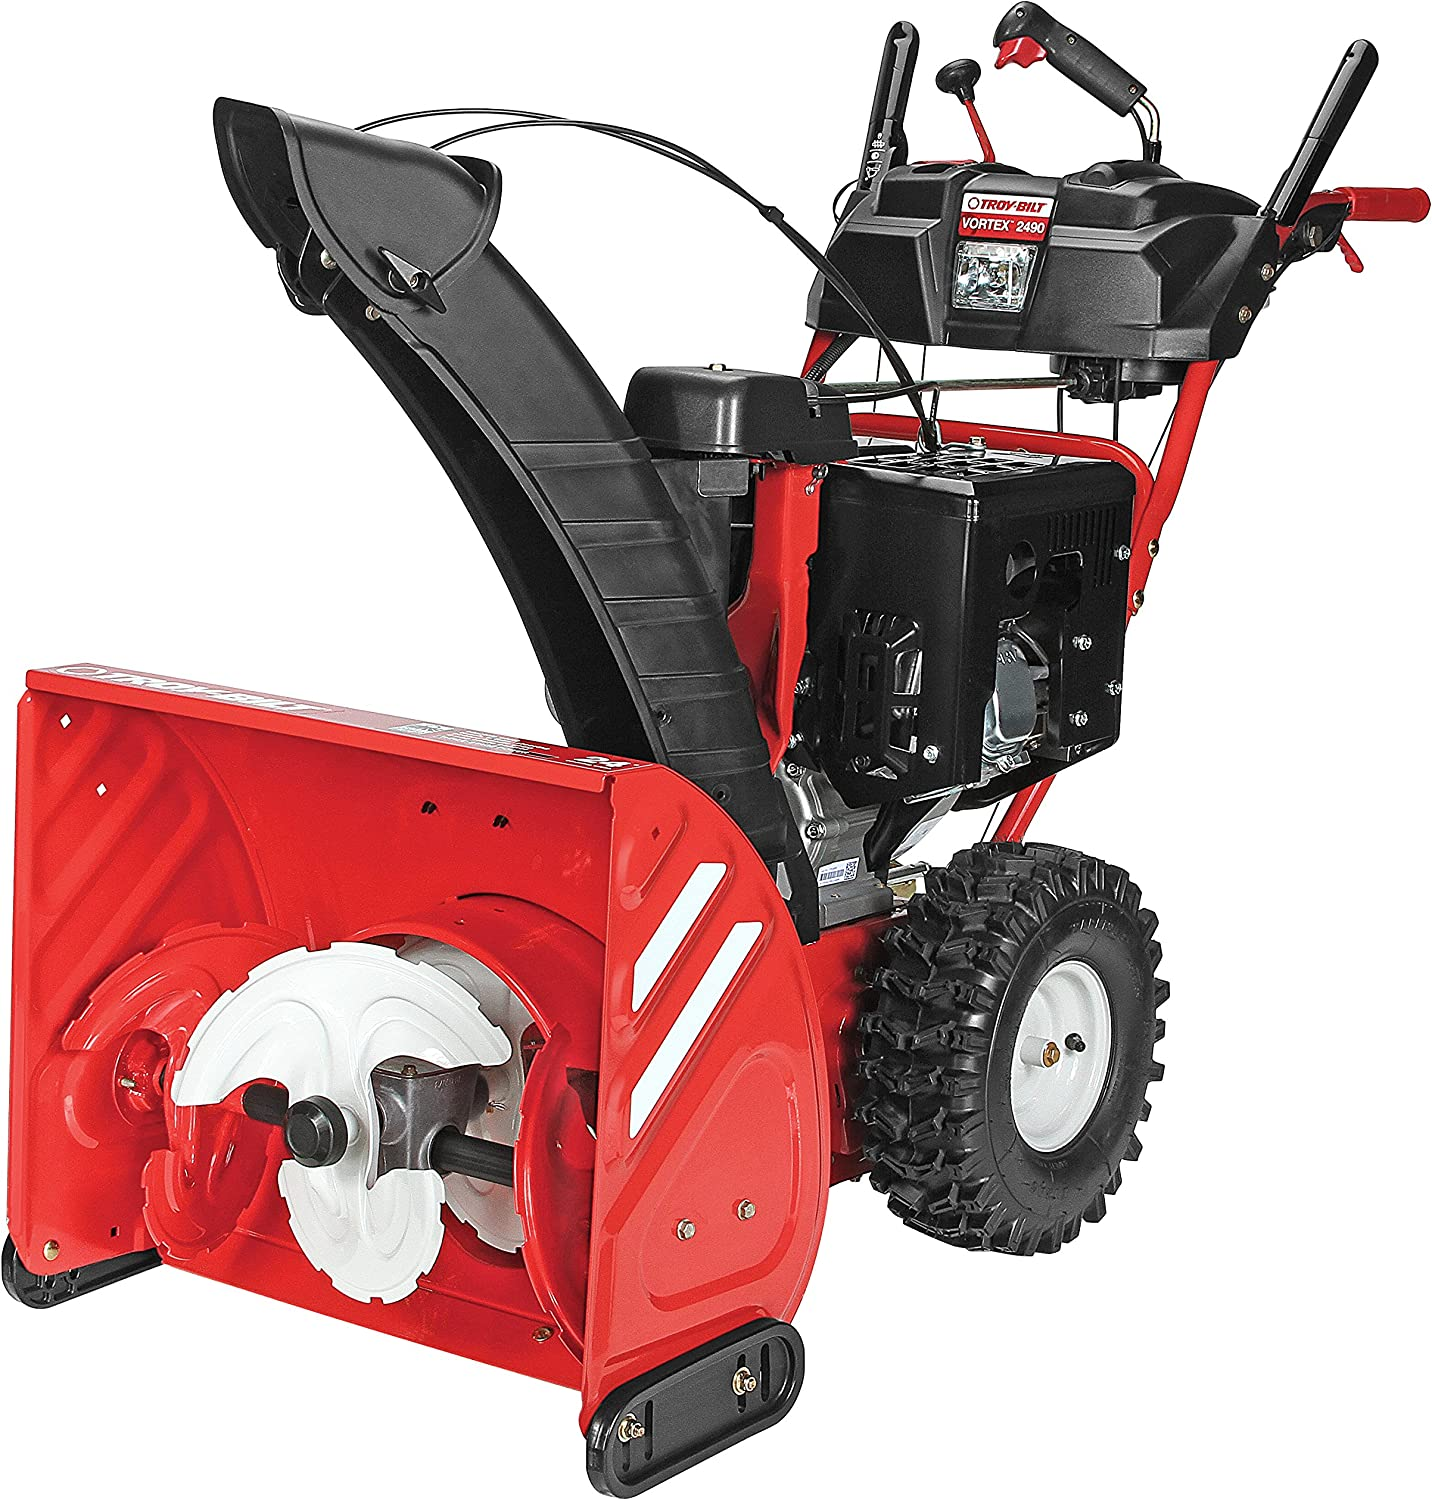 Image of Troy-Bilt 24 inch 277 cc Three Stage Gas snow blower